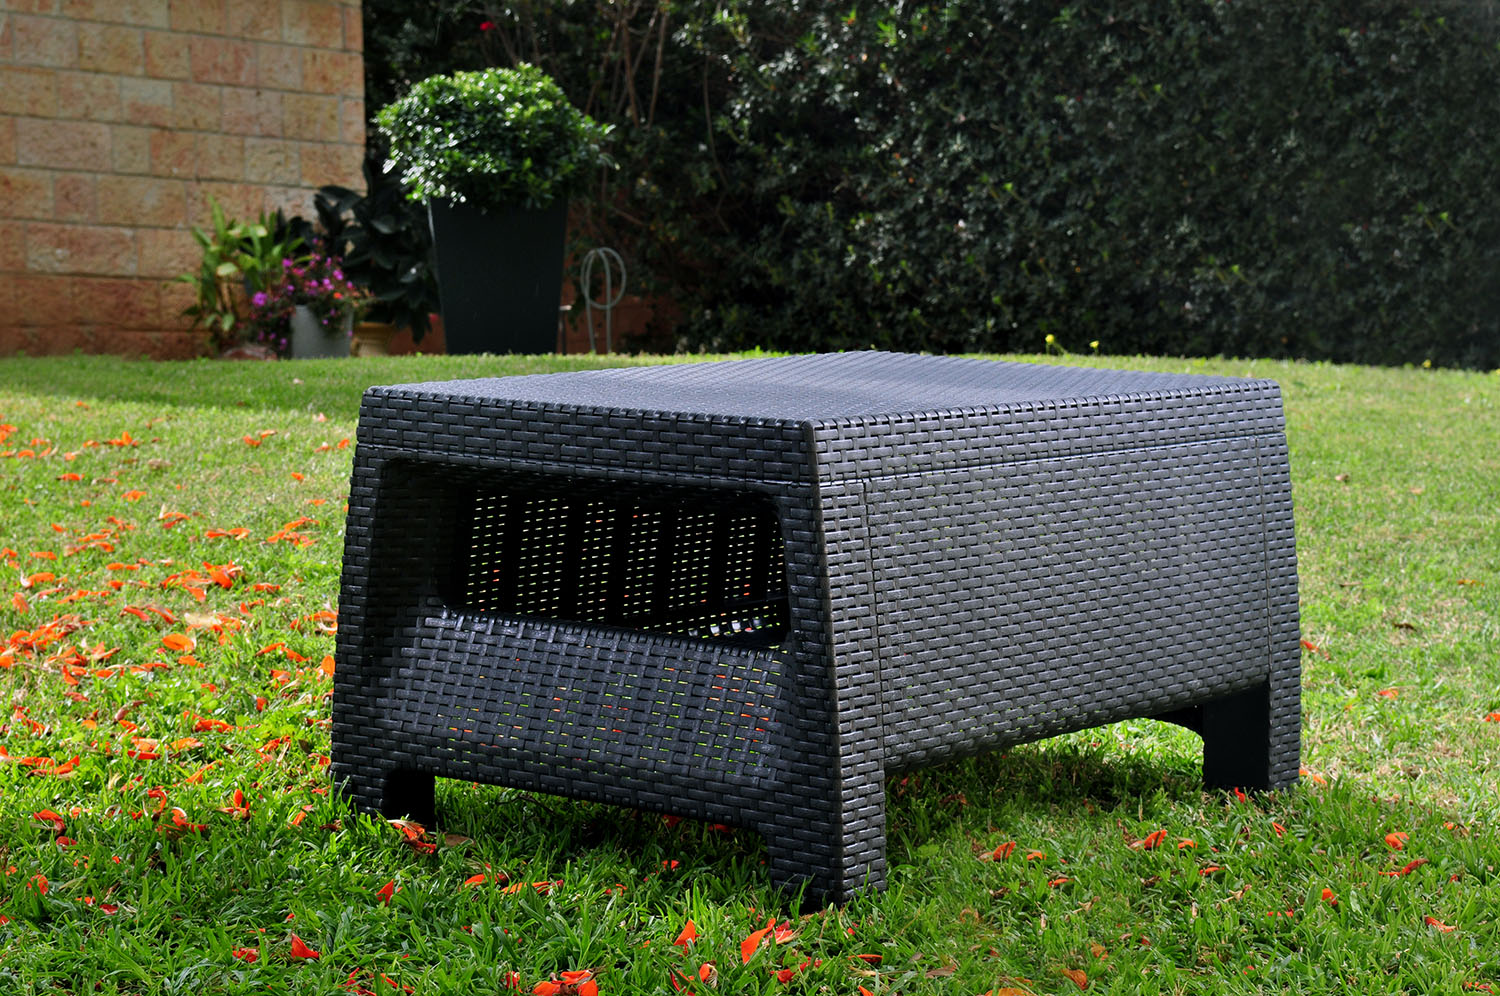 keter corfu resin coffee table all weather plastic patio furniture charcoal gray rattan image